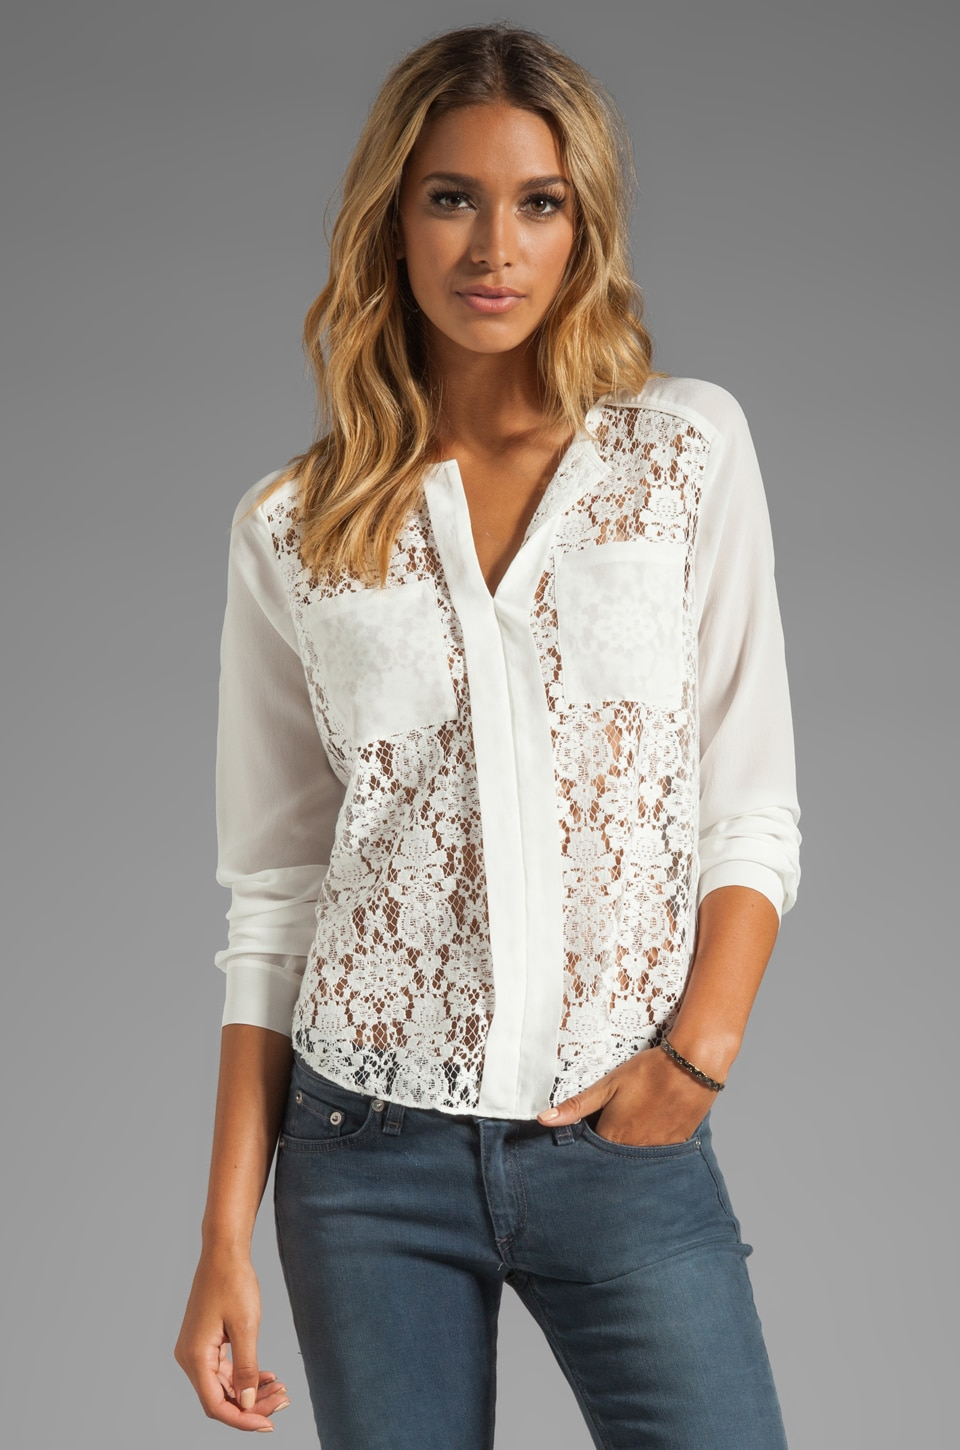 Rebecca Taylor Lace Blouse in Cream